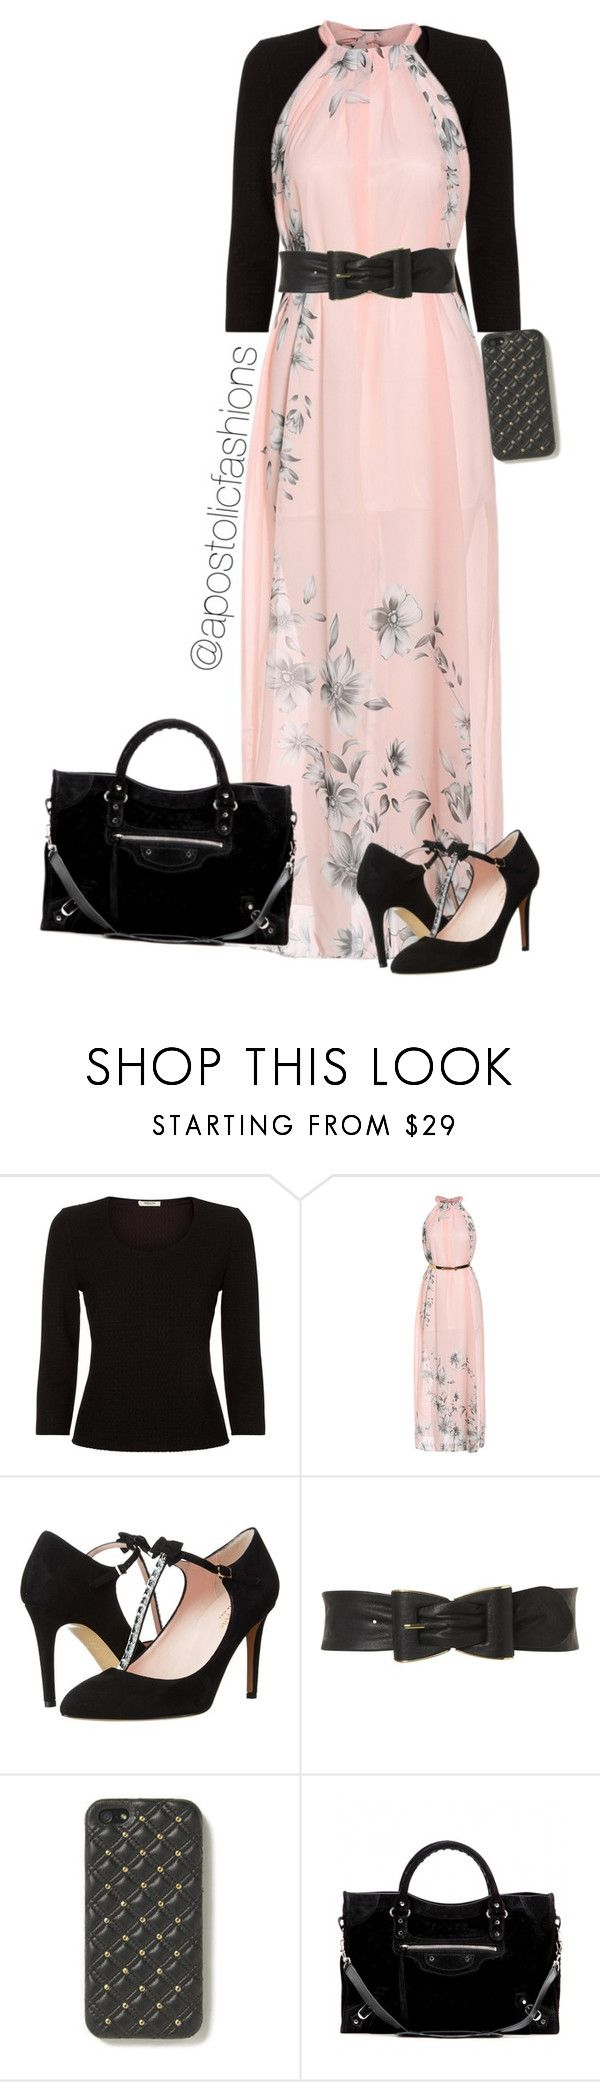 """Apostolic Fashions #830"" by apostolicfashions ❤ liked on Polyvore featuring Precis Petite, PinkBlush, Kate Spade, Jane Norman, The Case Factory and Balenciaga"